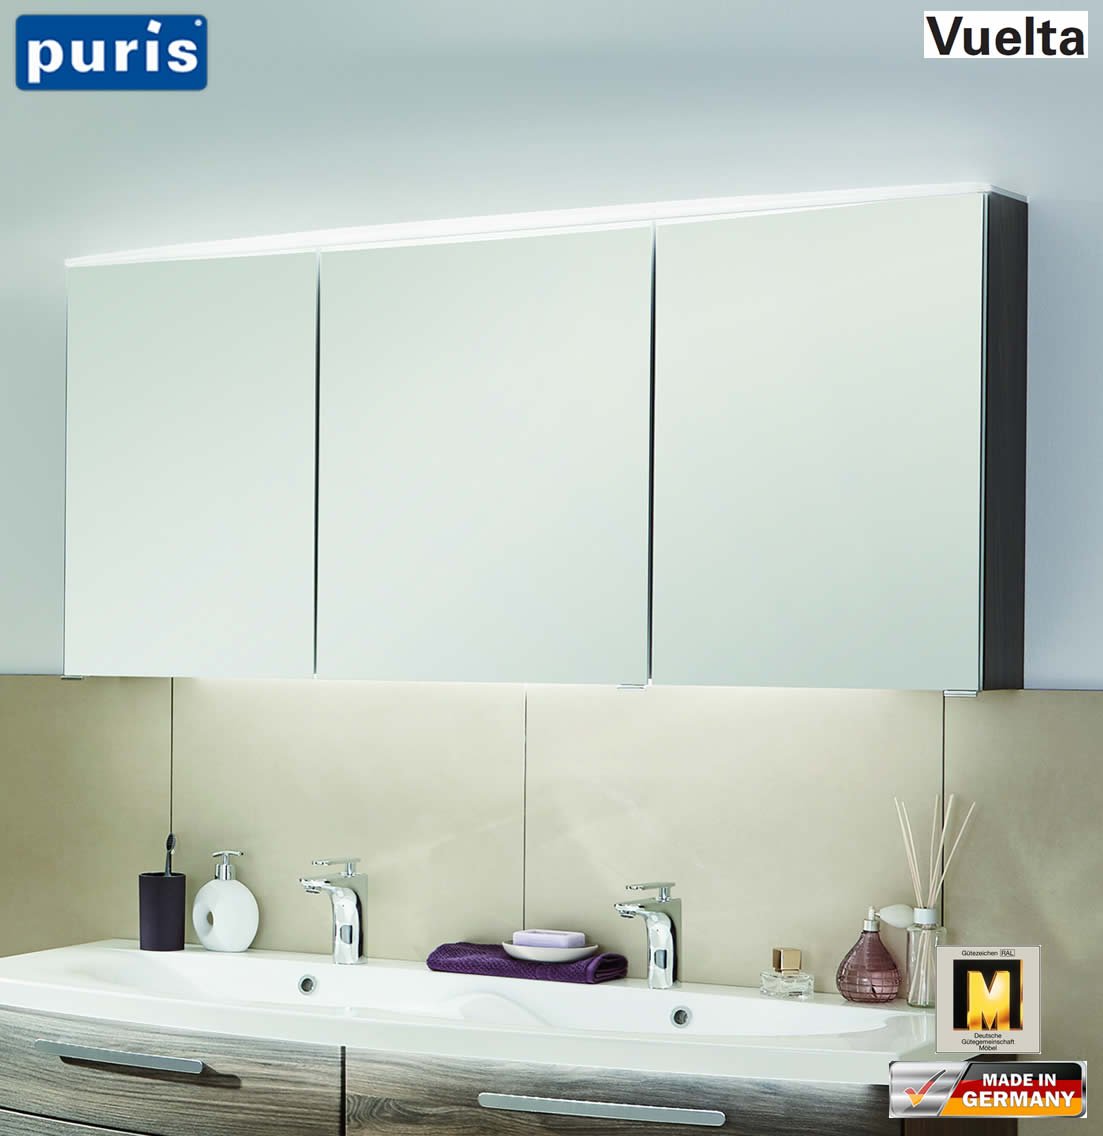 puris vuelta spiegelschrank 140 cm mit led fl chenleuchte. Black Bedroom Furniture Sets. Home Design Ideas